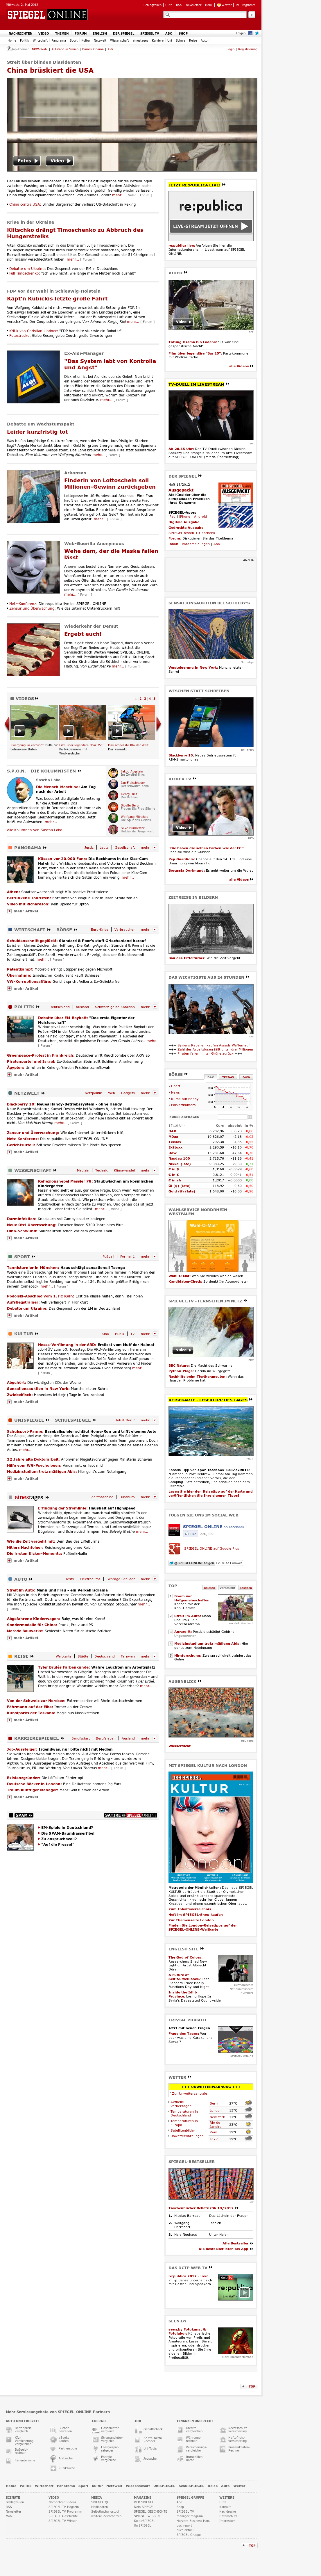 Spiegel Online at Wednesday May 2, 2012, 3:12 p.m. UTC